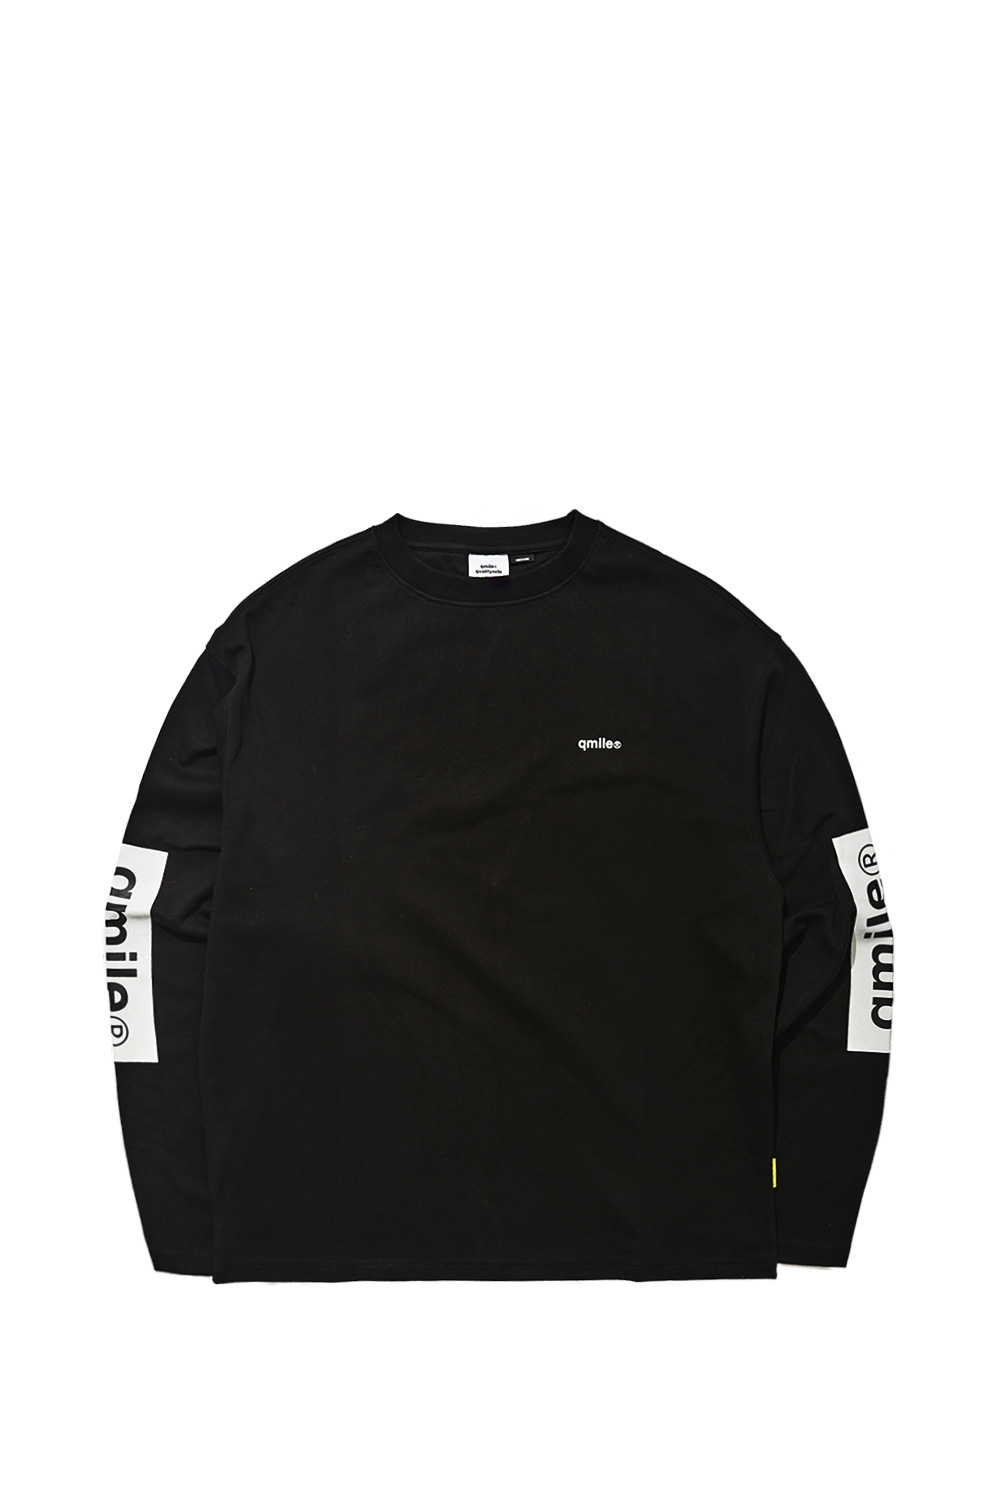 SLEEVE BANNER LONG SLEEVE | BLACK